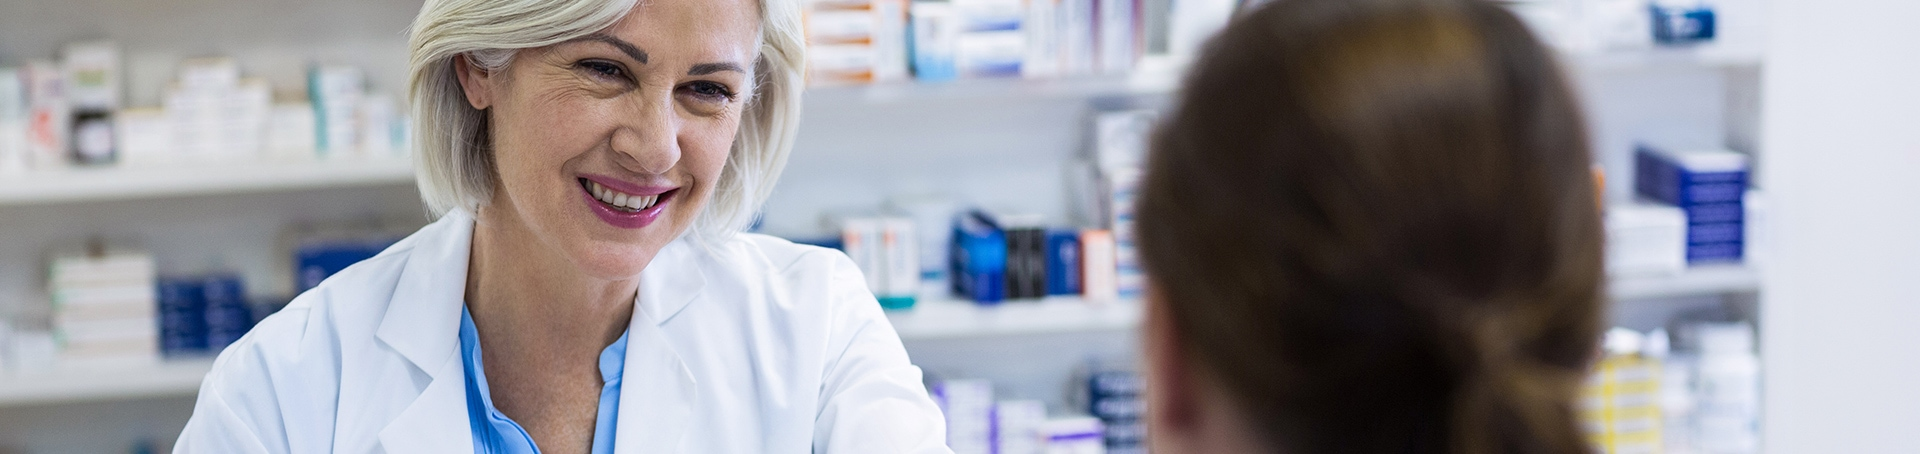 Wiley's Pharmacy serves Lancaster County offering prescription refills, consultations, and more